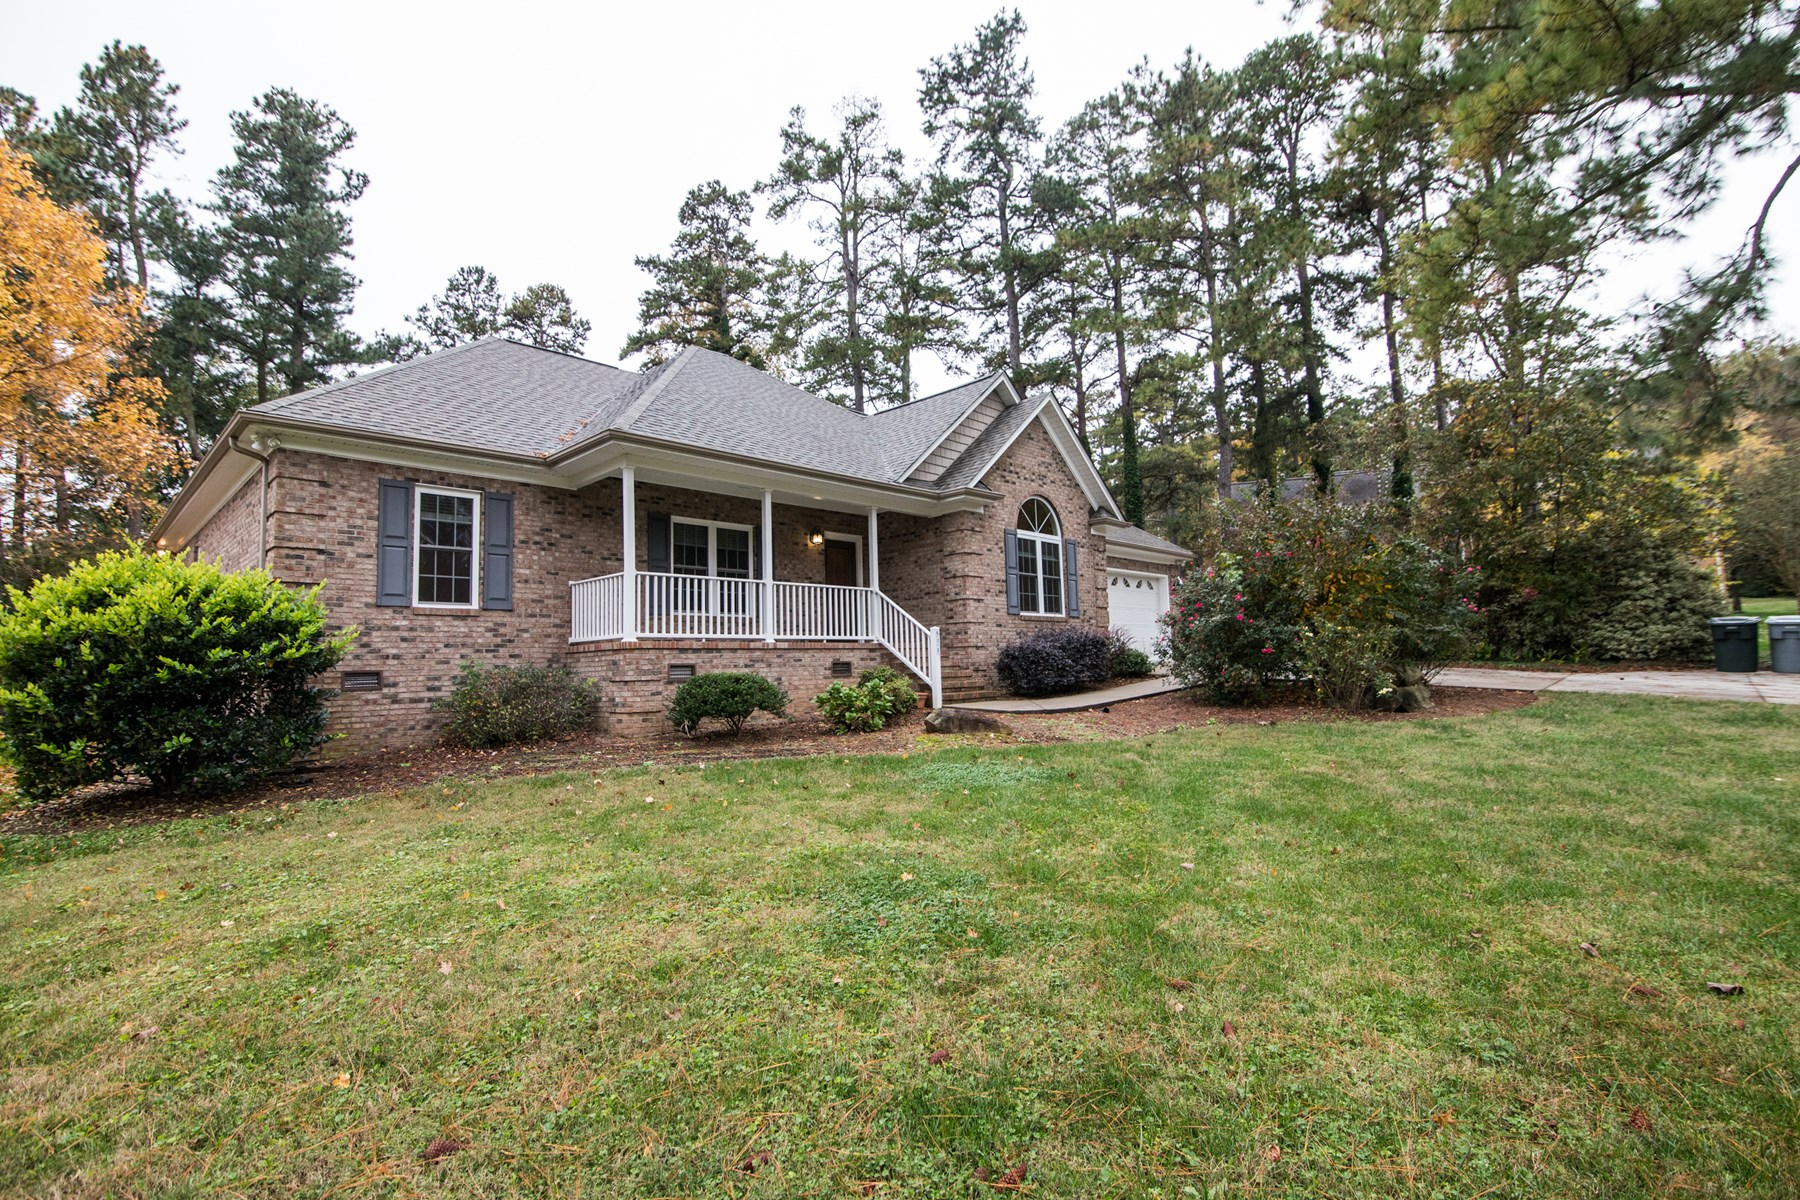 Gorgeous 1-story Home is Asheboro, NC in Great Neighborhood